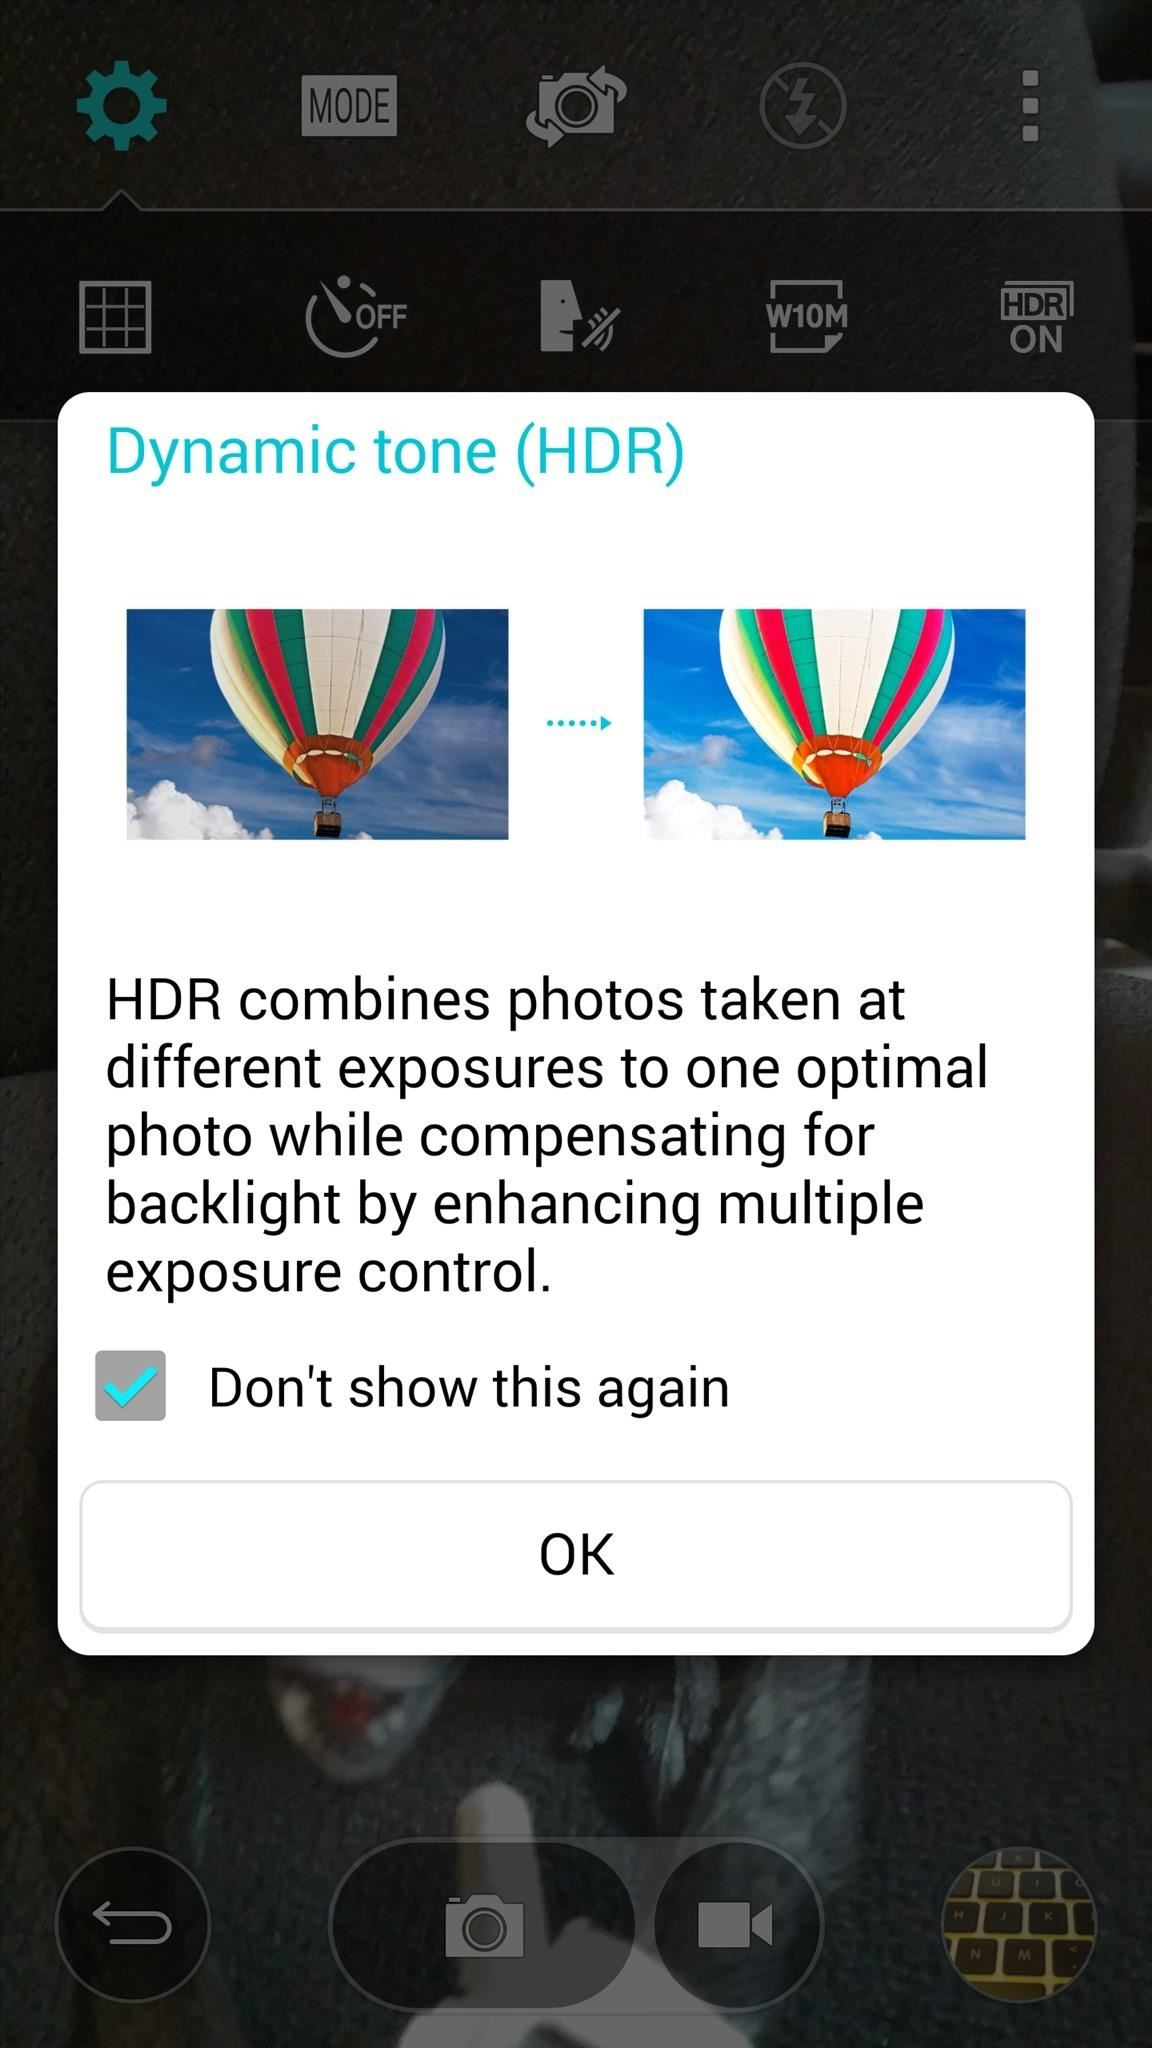 8 Things Every LG G3 Owner Should Know About Their Camera